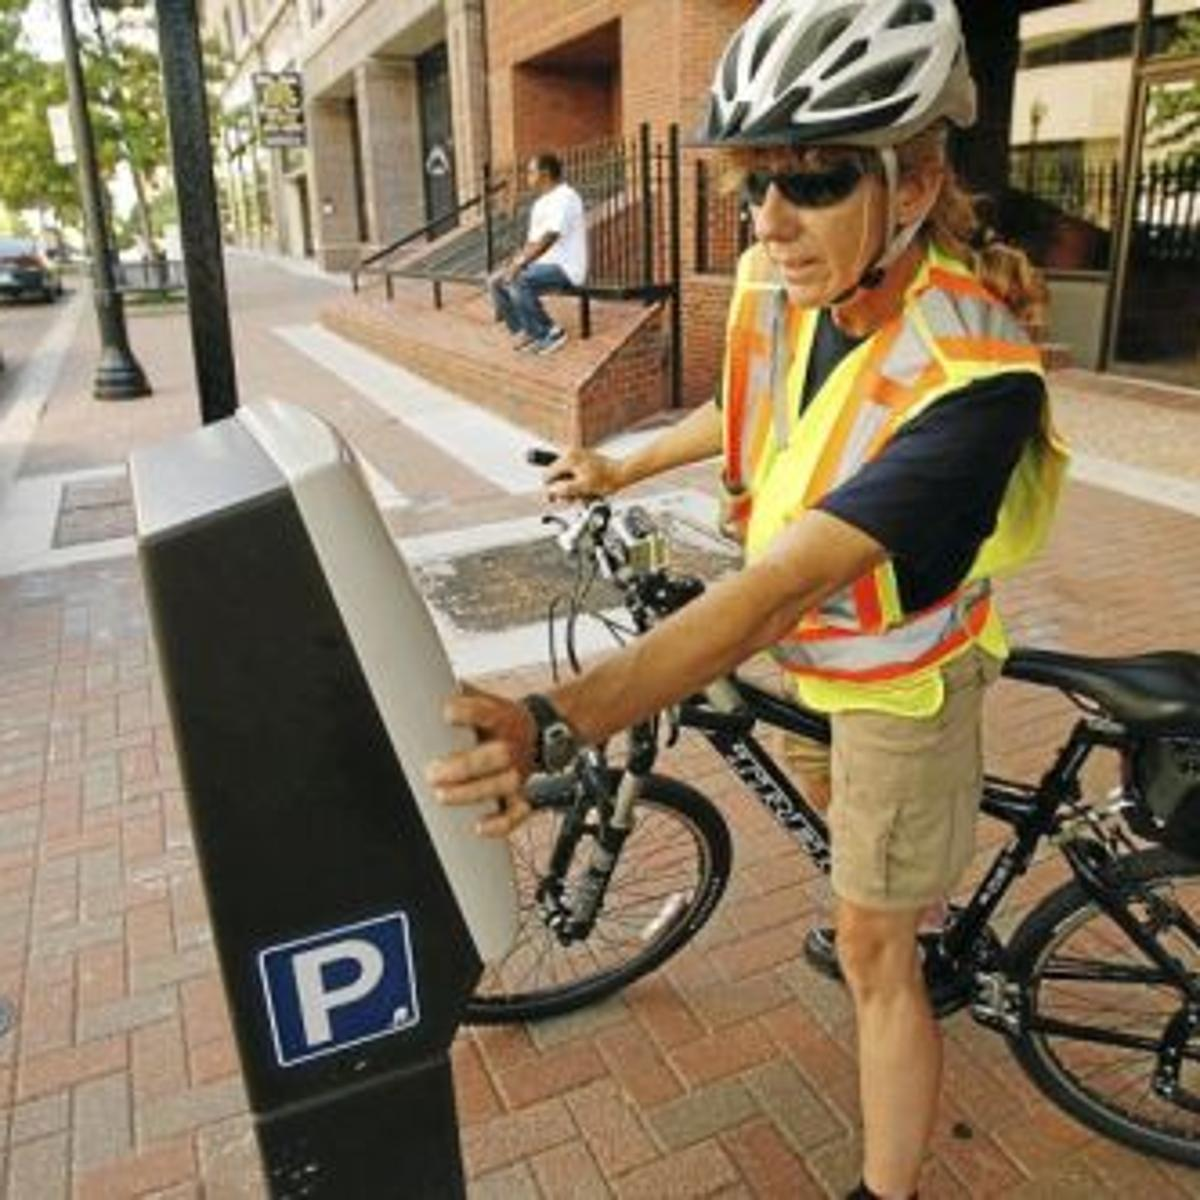 City parking authority to seek location for possible